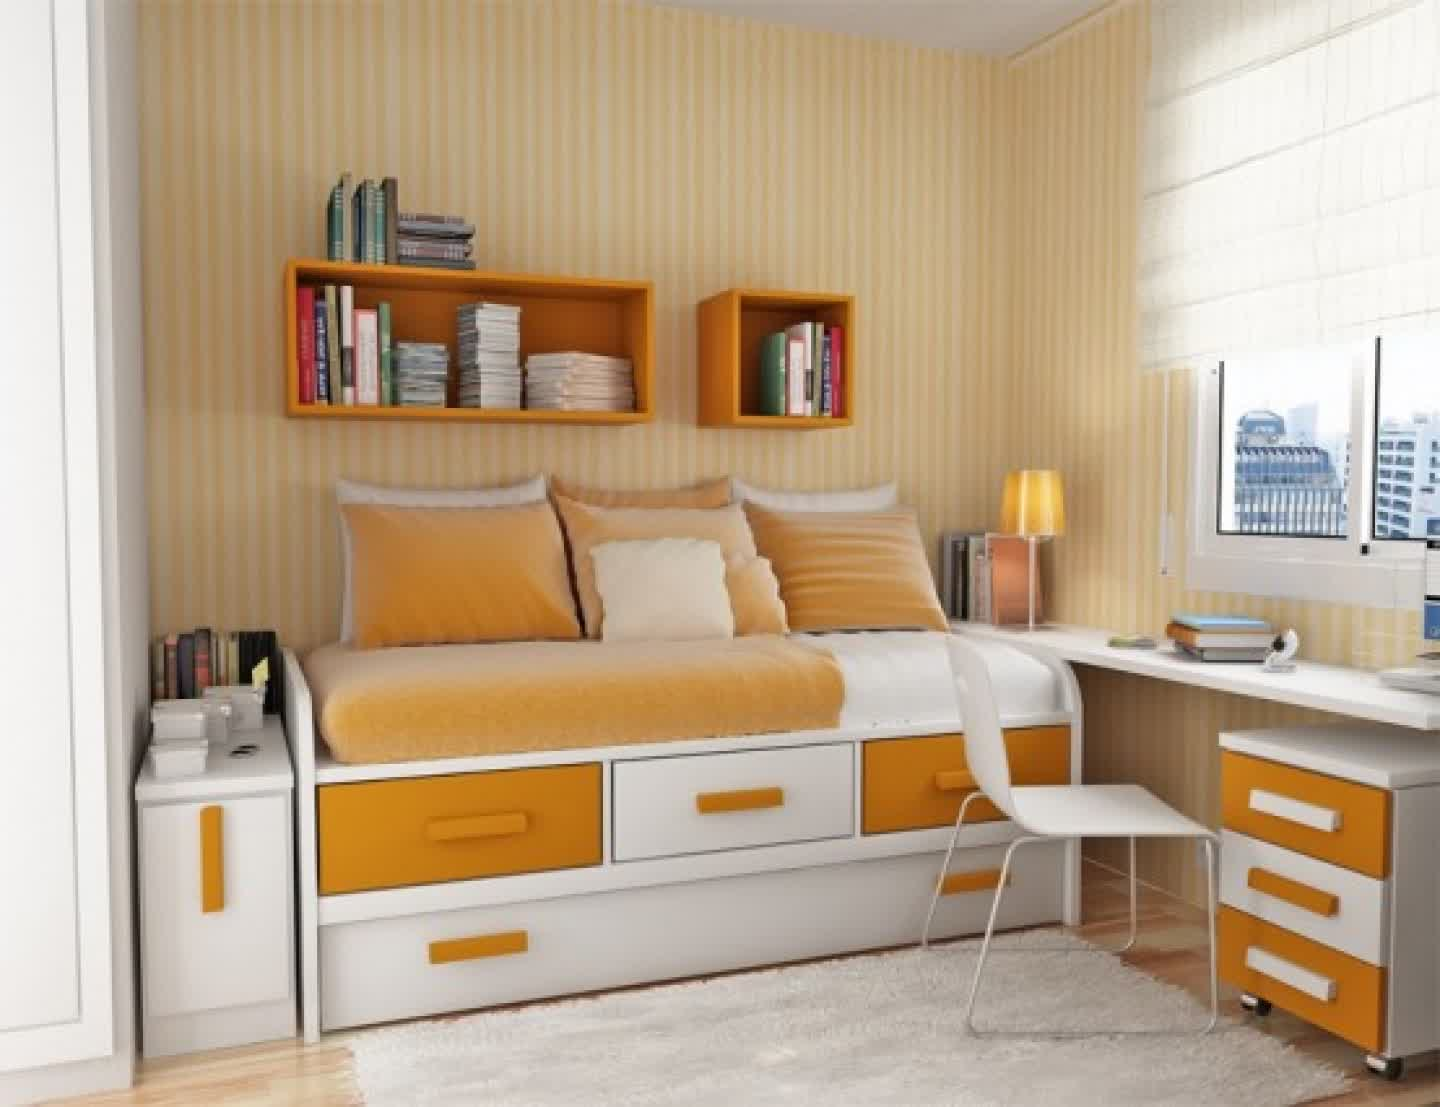 Ihram Kids For Sale Dubai: Trundle Beds For Children To Create An Accessible Bedroom